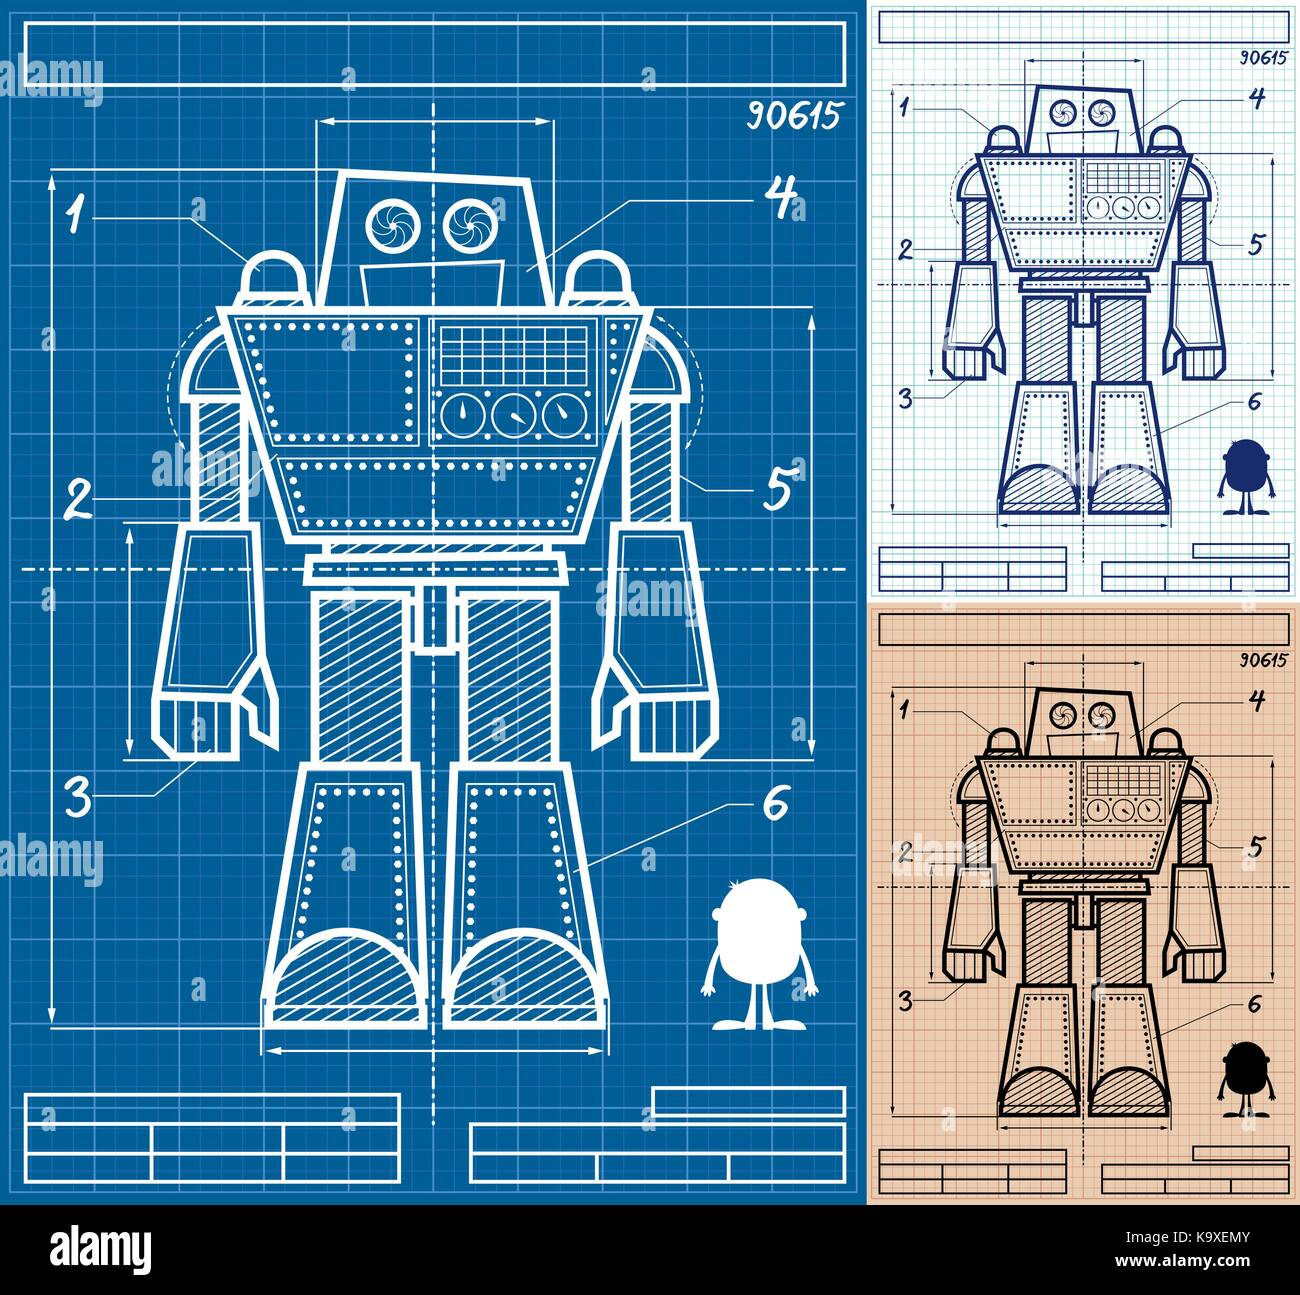 Cartoon blueprint of giant robot in 3 versions stock vector art cartoon blueprint of giant robot in 3 versions malvernweather Gallery